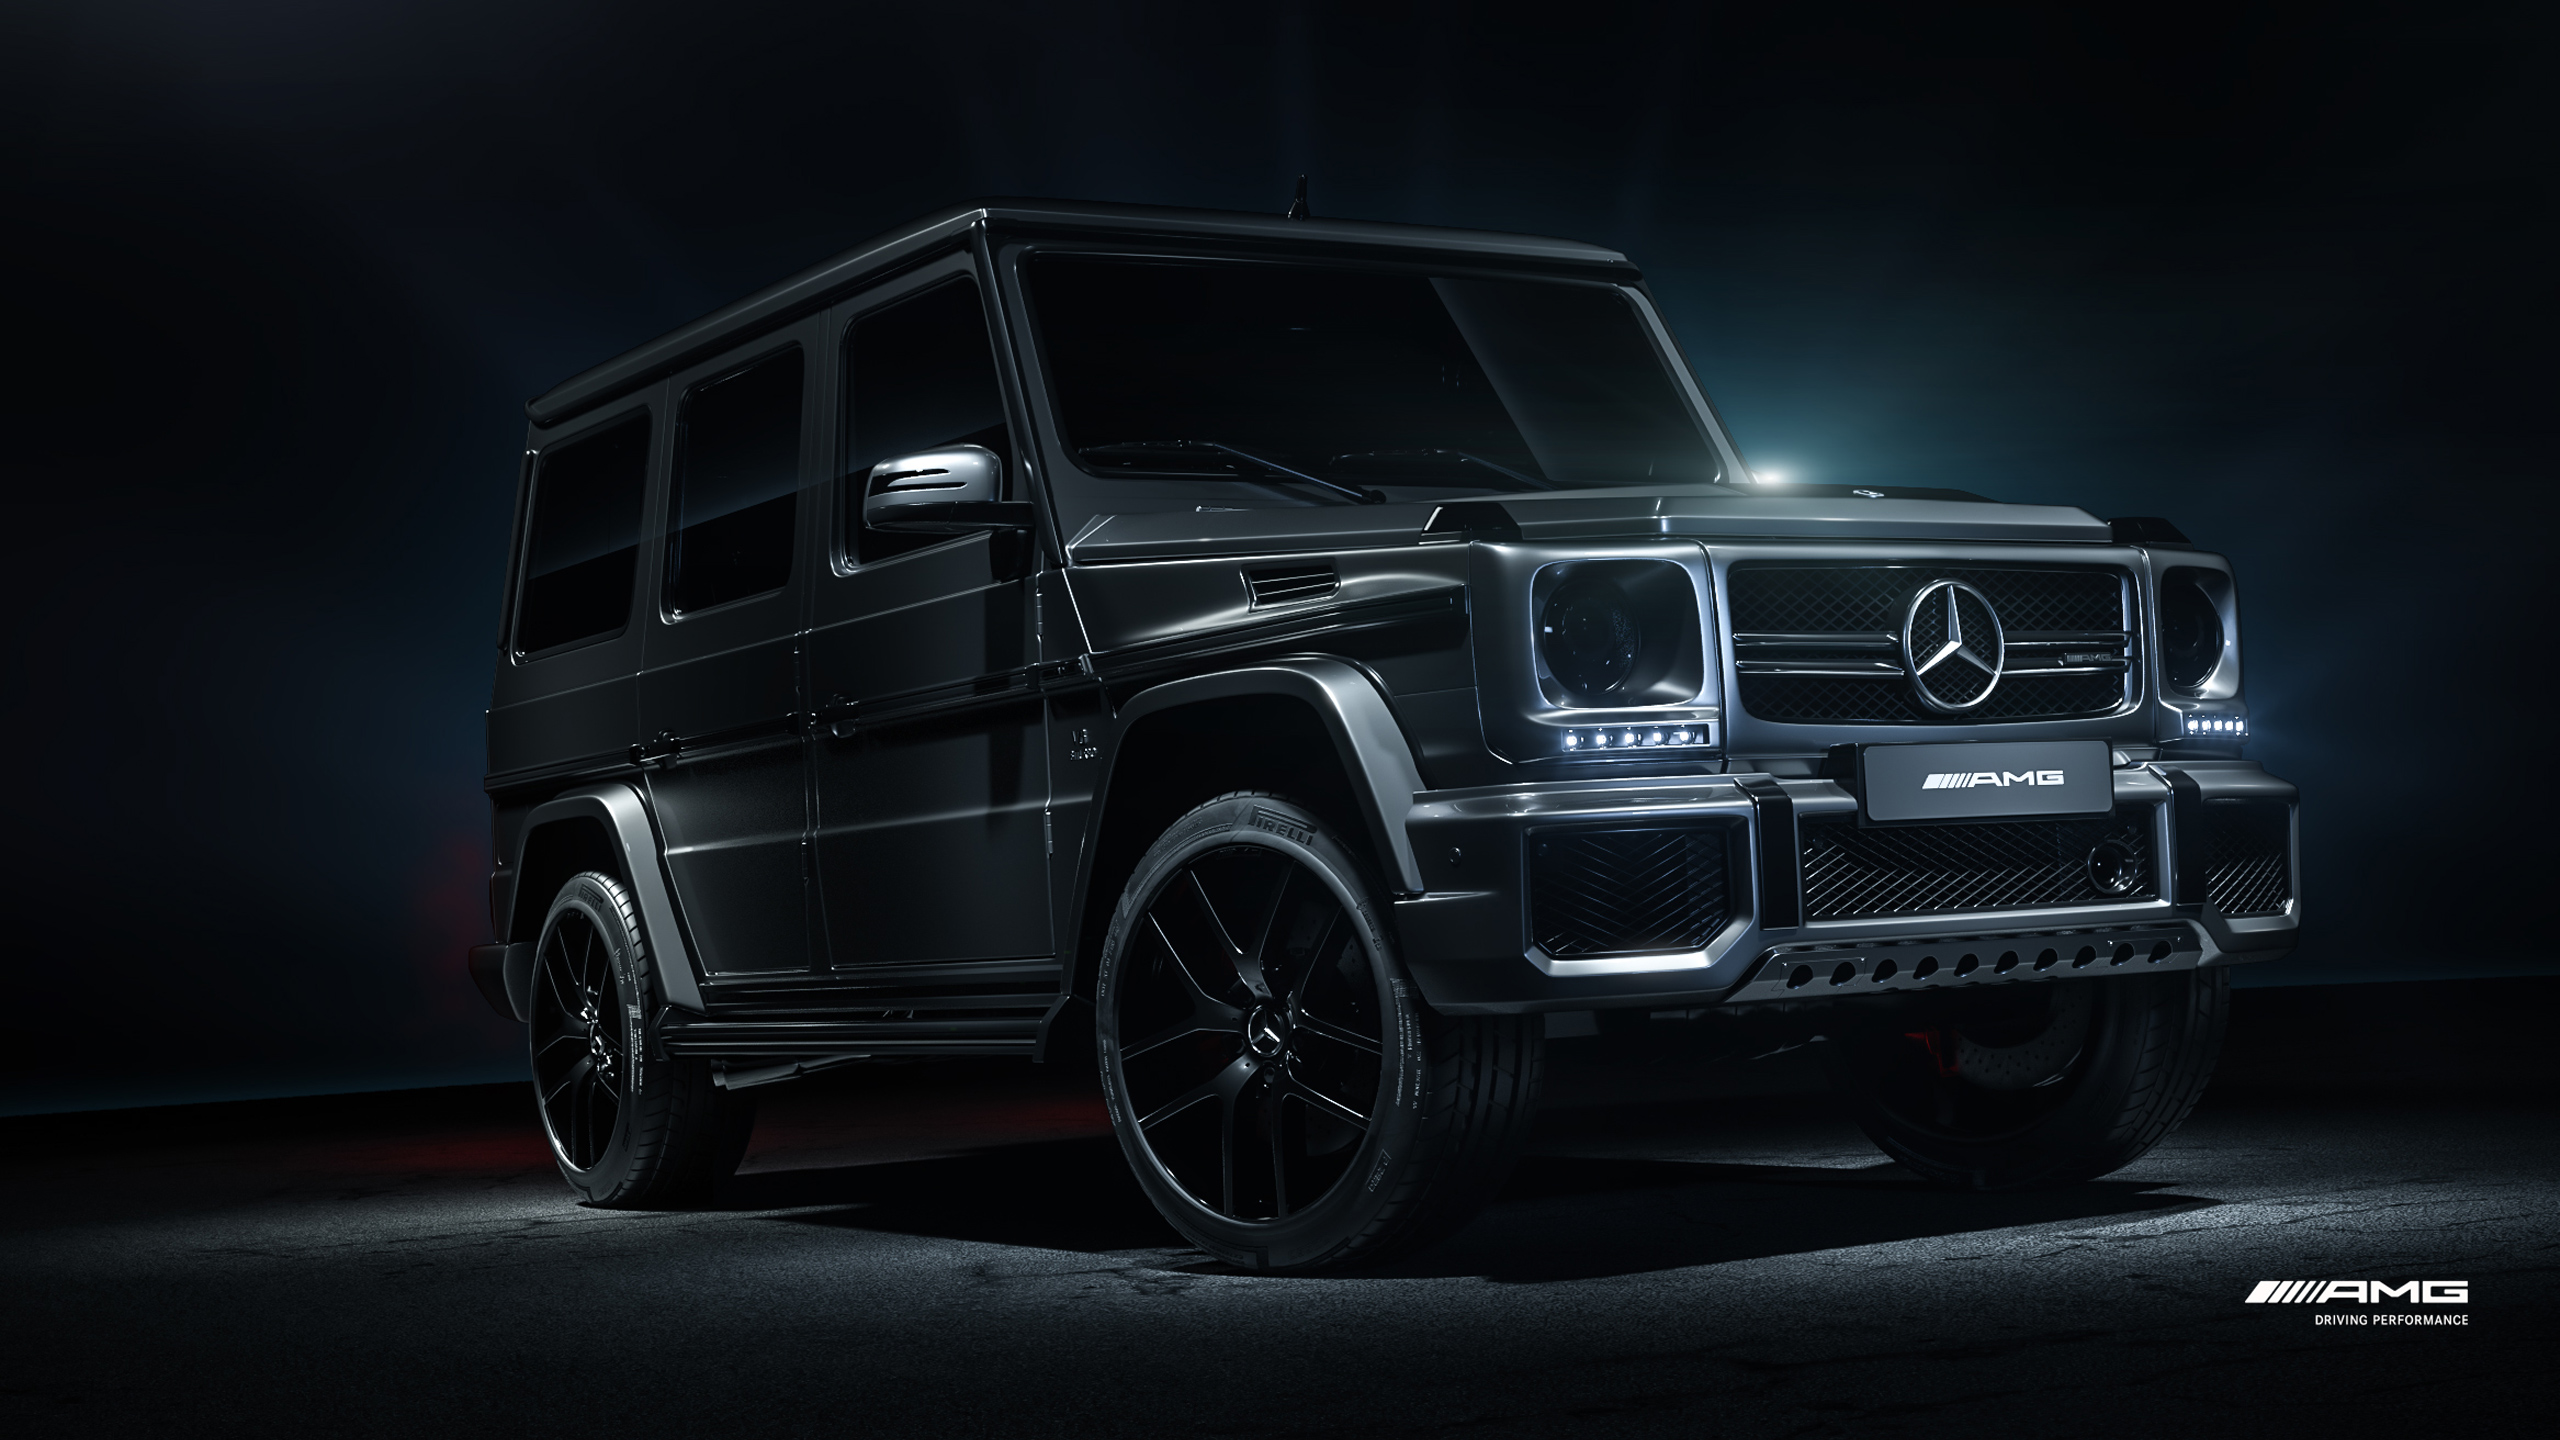 Benz 4matic Car >> Mercedes Benz G 63 AMG Wallpaper | HD Car Wallpapers | ID #8448